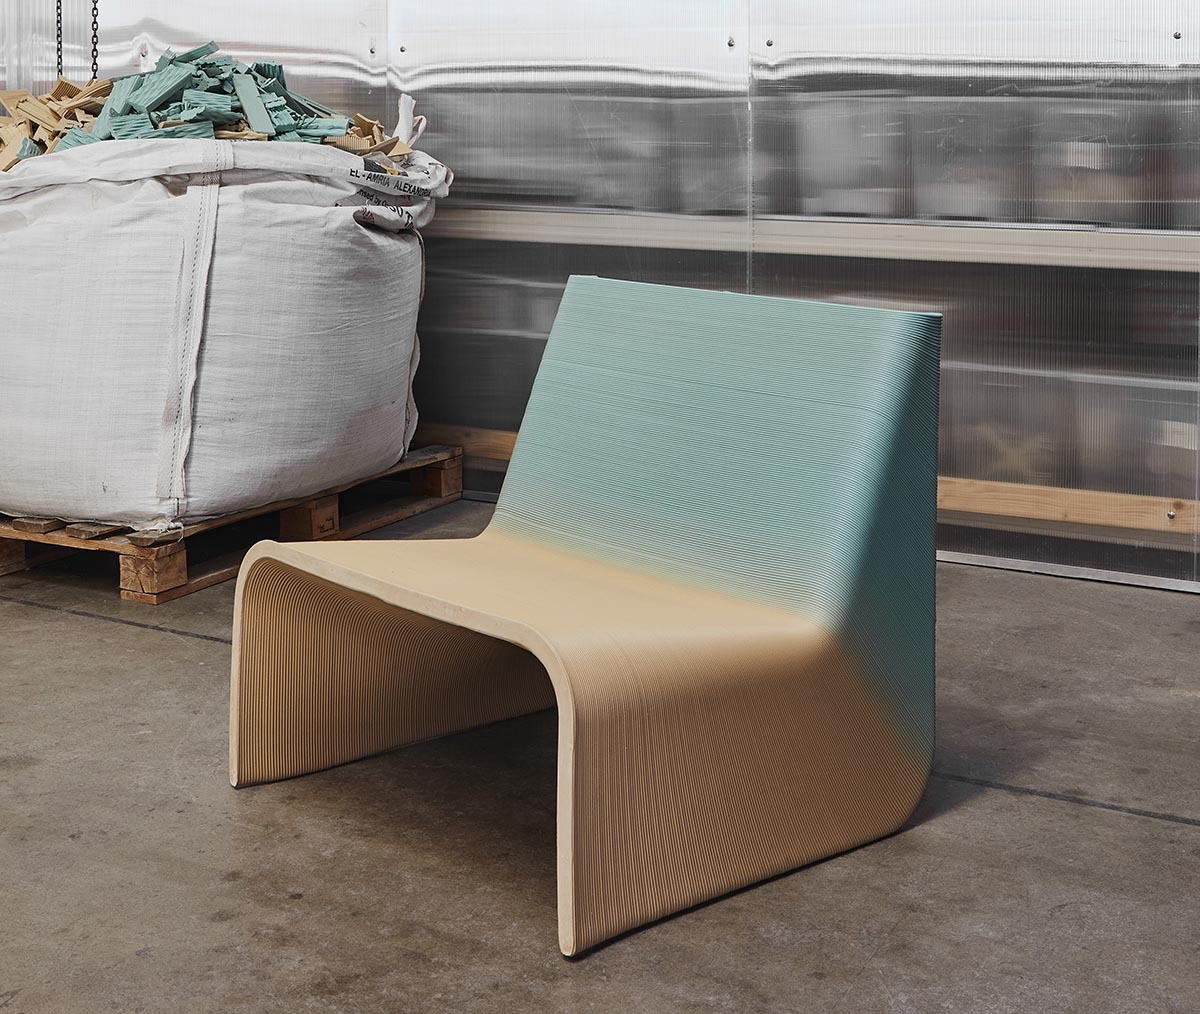 A modern 3D printed chair made from waste materials.